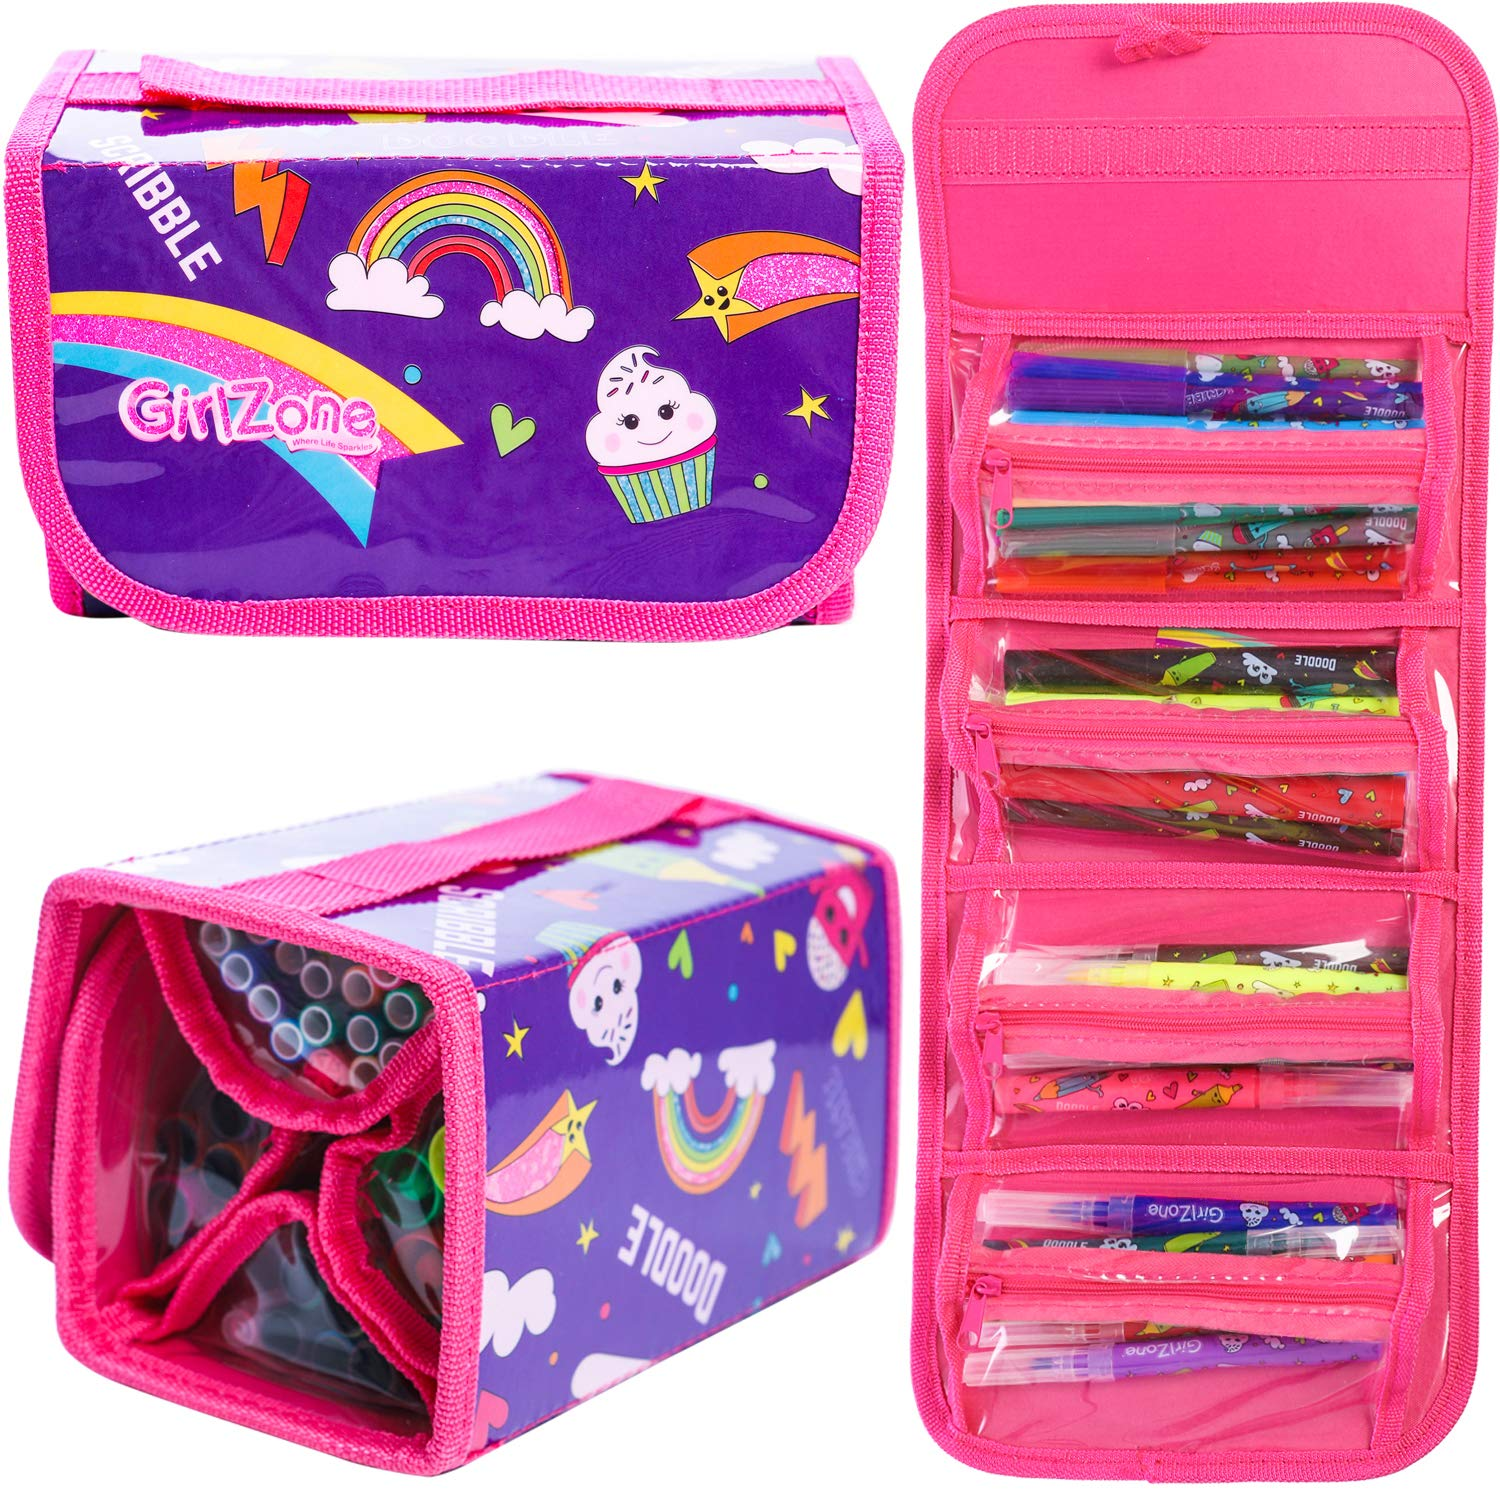 Arts and Crafts for Girls - Fruit Scented Cute Stationery Set, Fun Pencil Case Including 38 Fruit Scented Marker Pens. Great Birthday Present/Gift for Girls of All Ages.